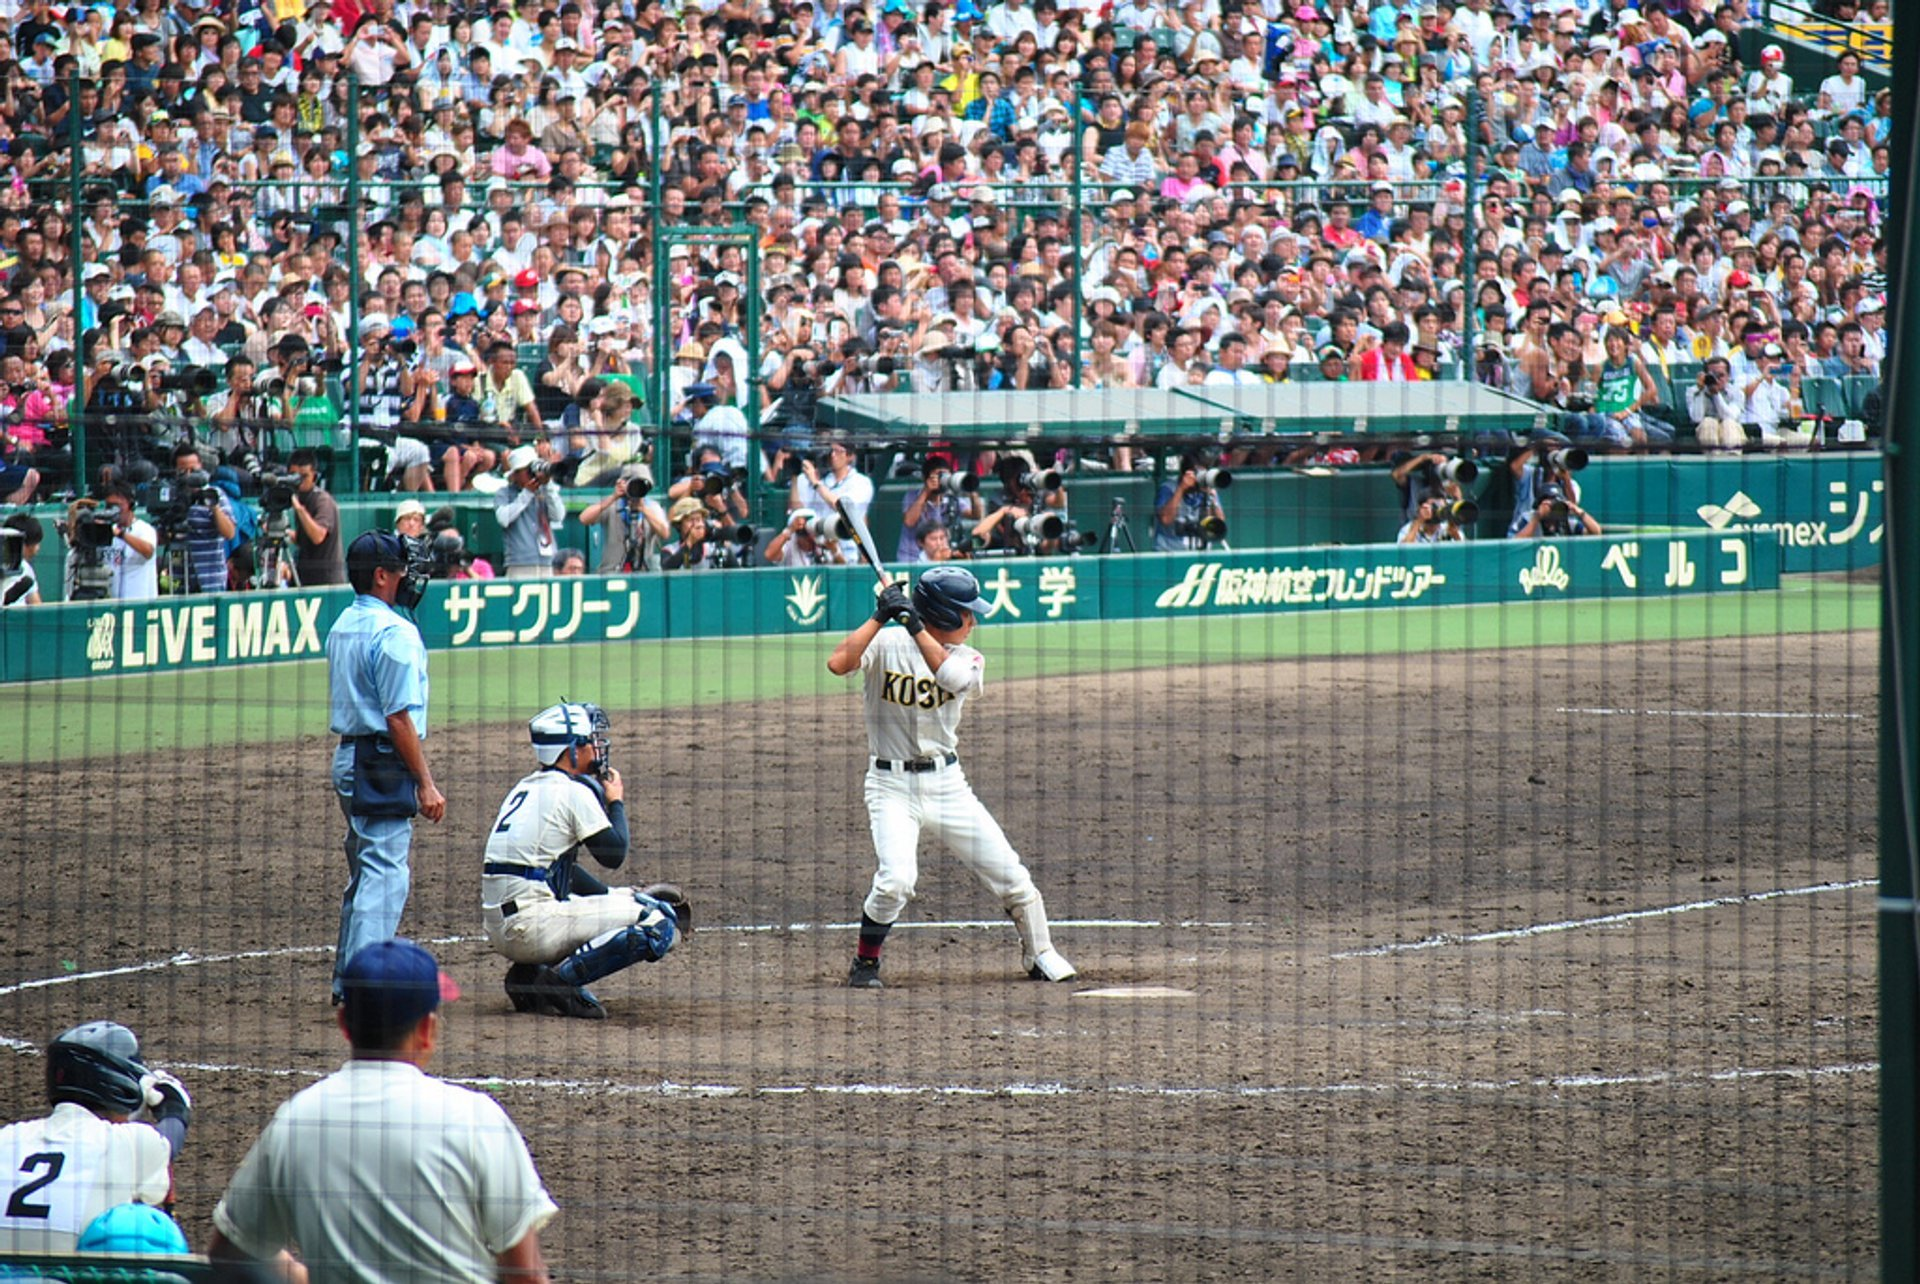 Baseball Season in Japan 2020 - Best Time